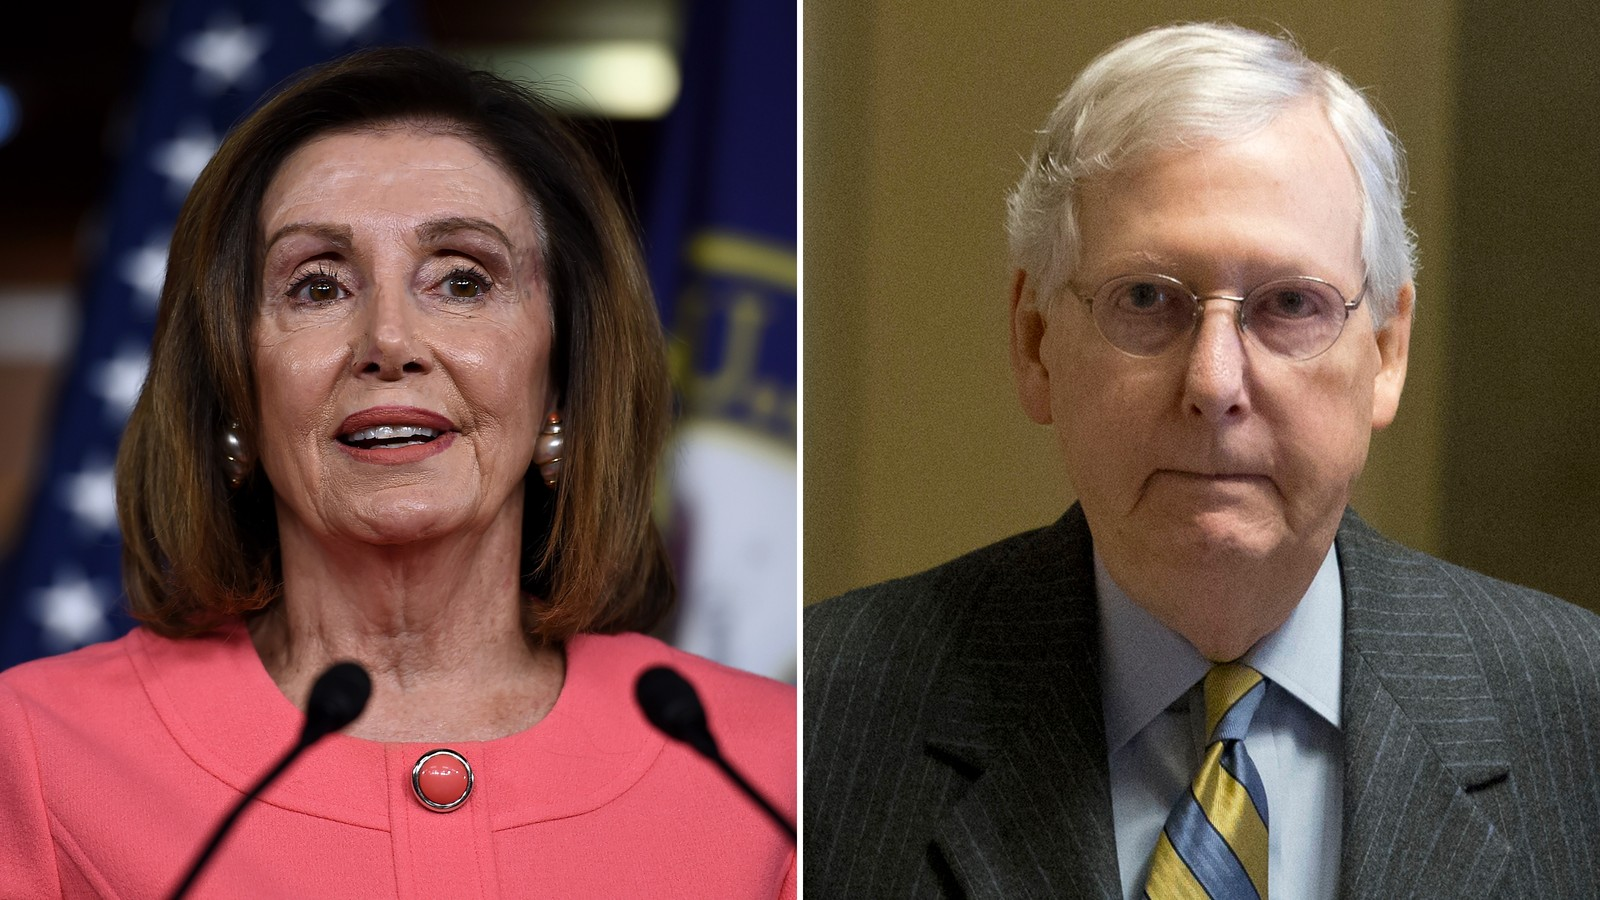 Lawmakers still have no bipartisan deal to avert shutdown as McConnell takes issue with Democrats' stopgap measure